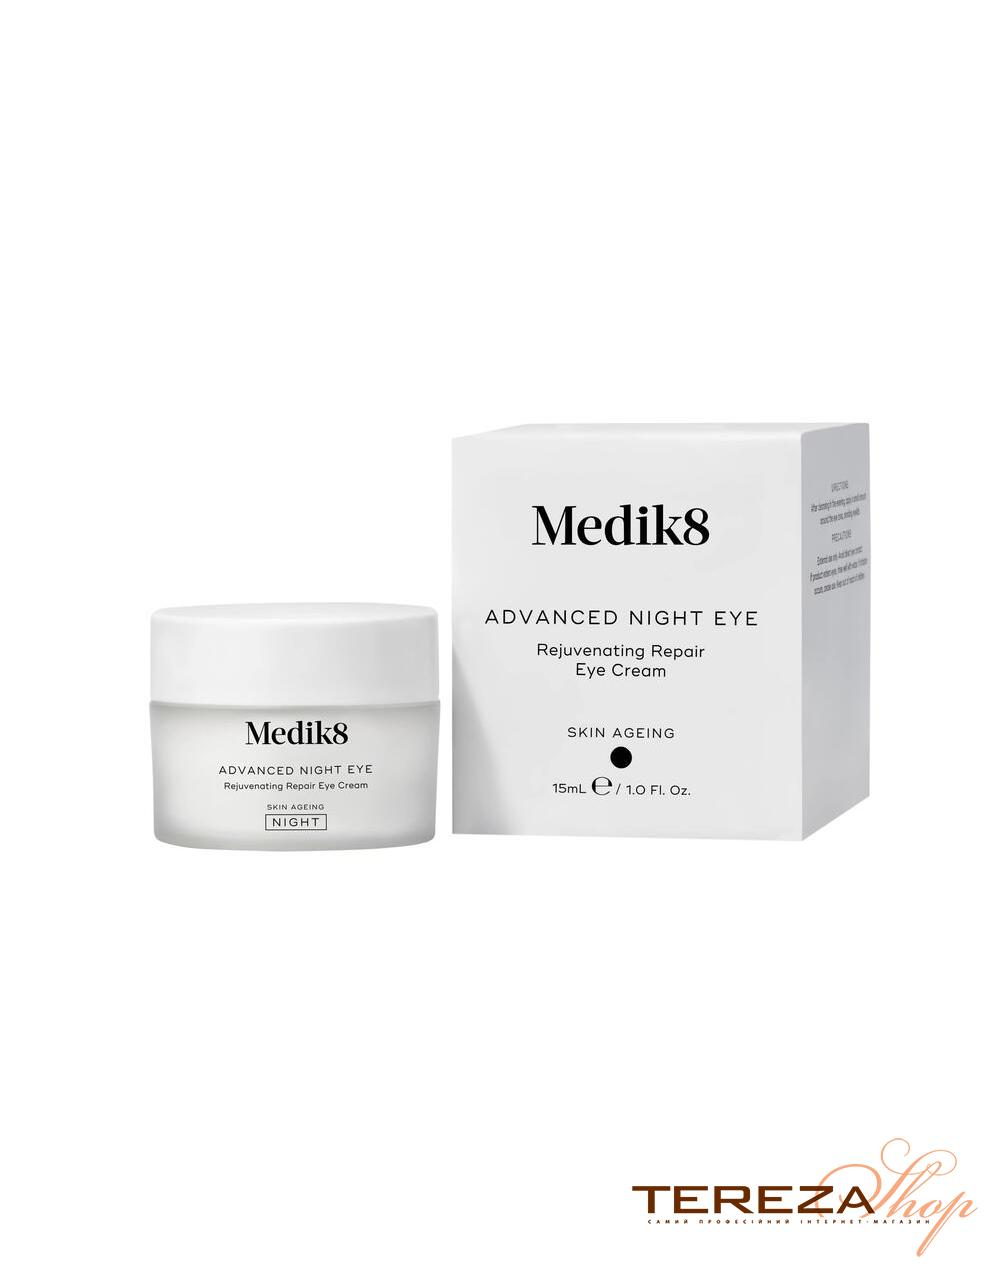 ADVANCED NIGHT EYE MEDIK8 | Tereza Shop